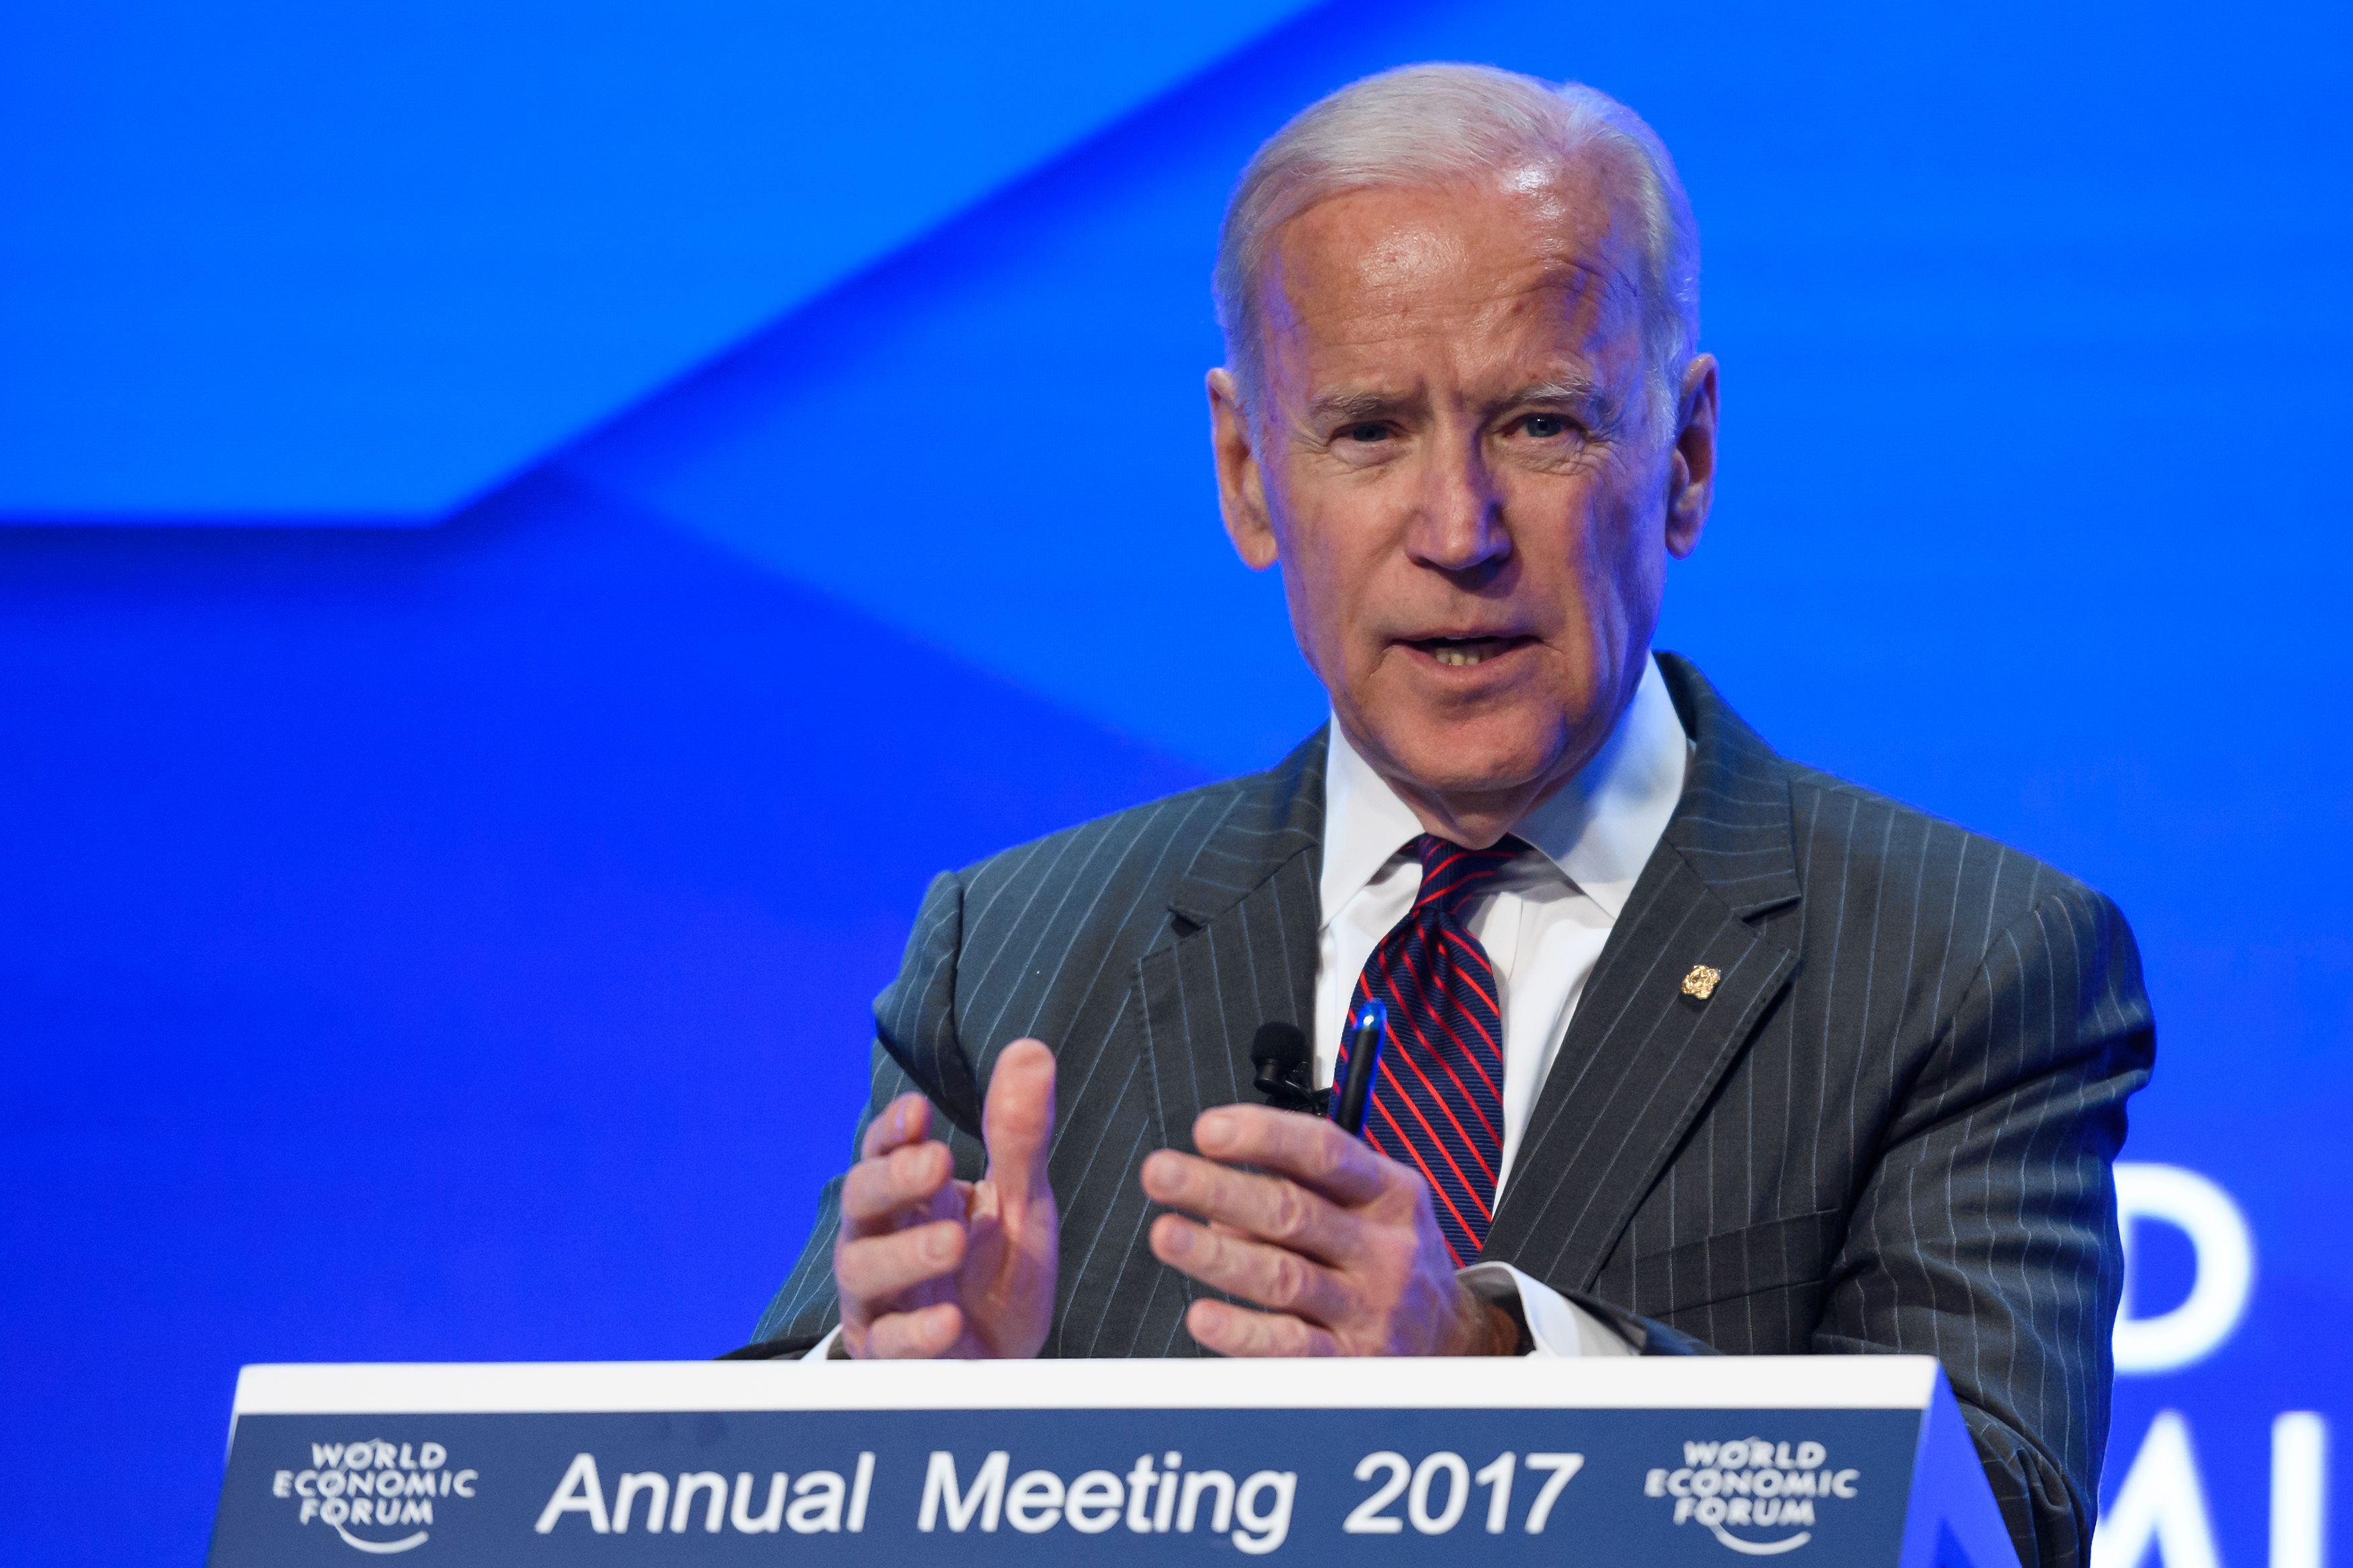 Former Vice President Joe Biden's quiet run for the 2020 presidential campaign is already winning deep support in Democratic circles. The pollster Rasmussen Reports reveals that already Biden has the backing of 37 percent of Democrats, a crushing blow to two others hinting at a repeat run, Hillary Clinton and Sen. Bernie Sanders. Clinton is second, at 14 percent, Sanders third …